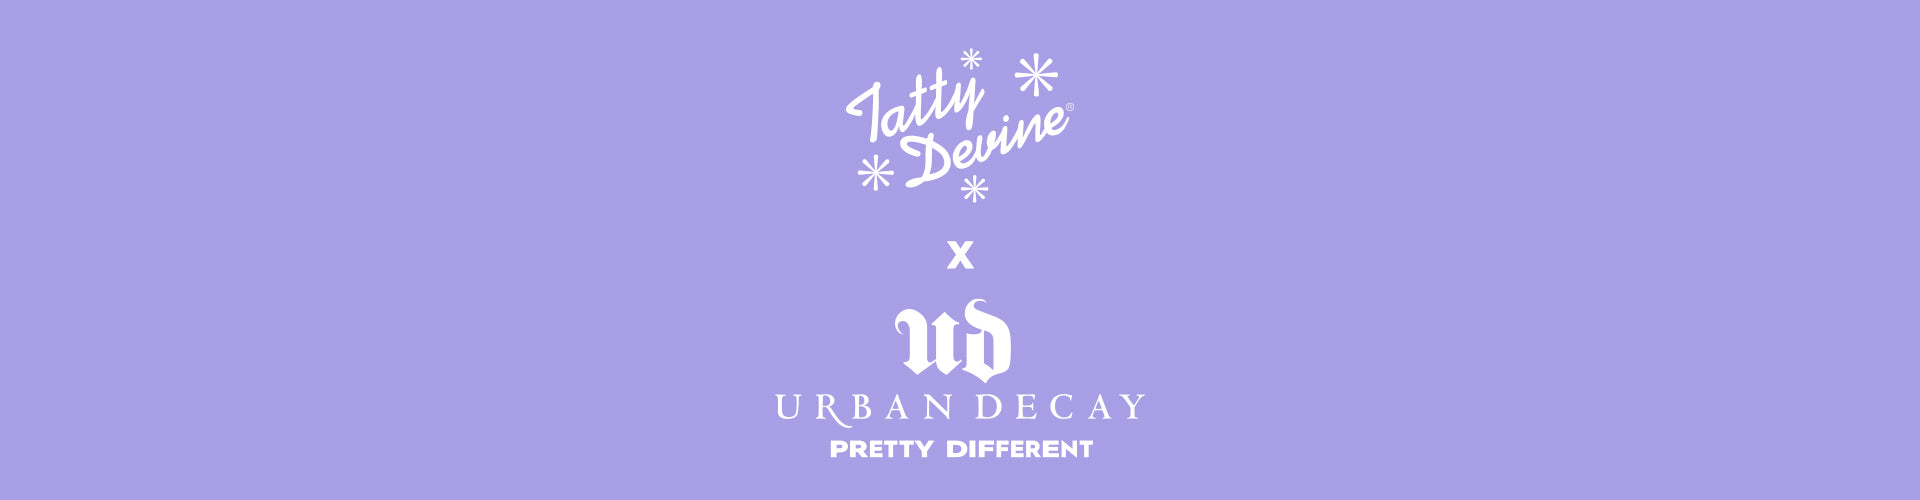 COMPETITION: Tatty Devine X Urban Decay